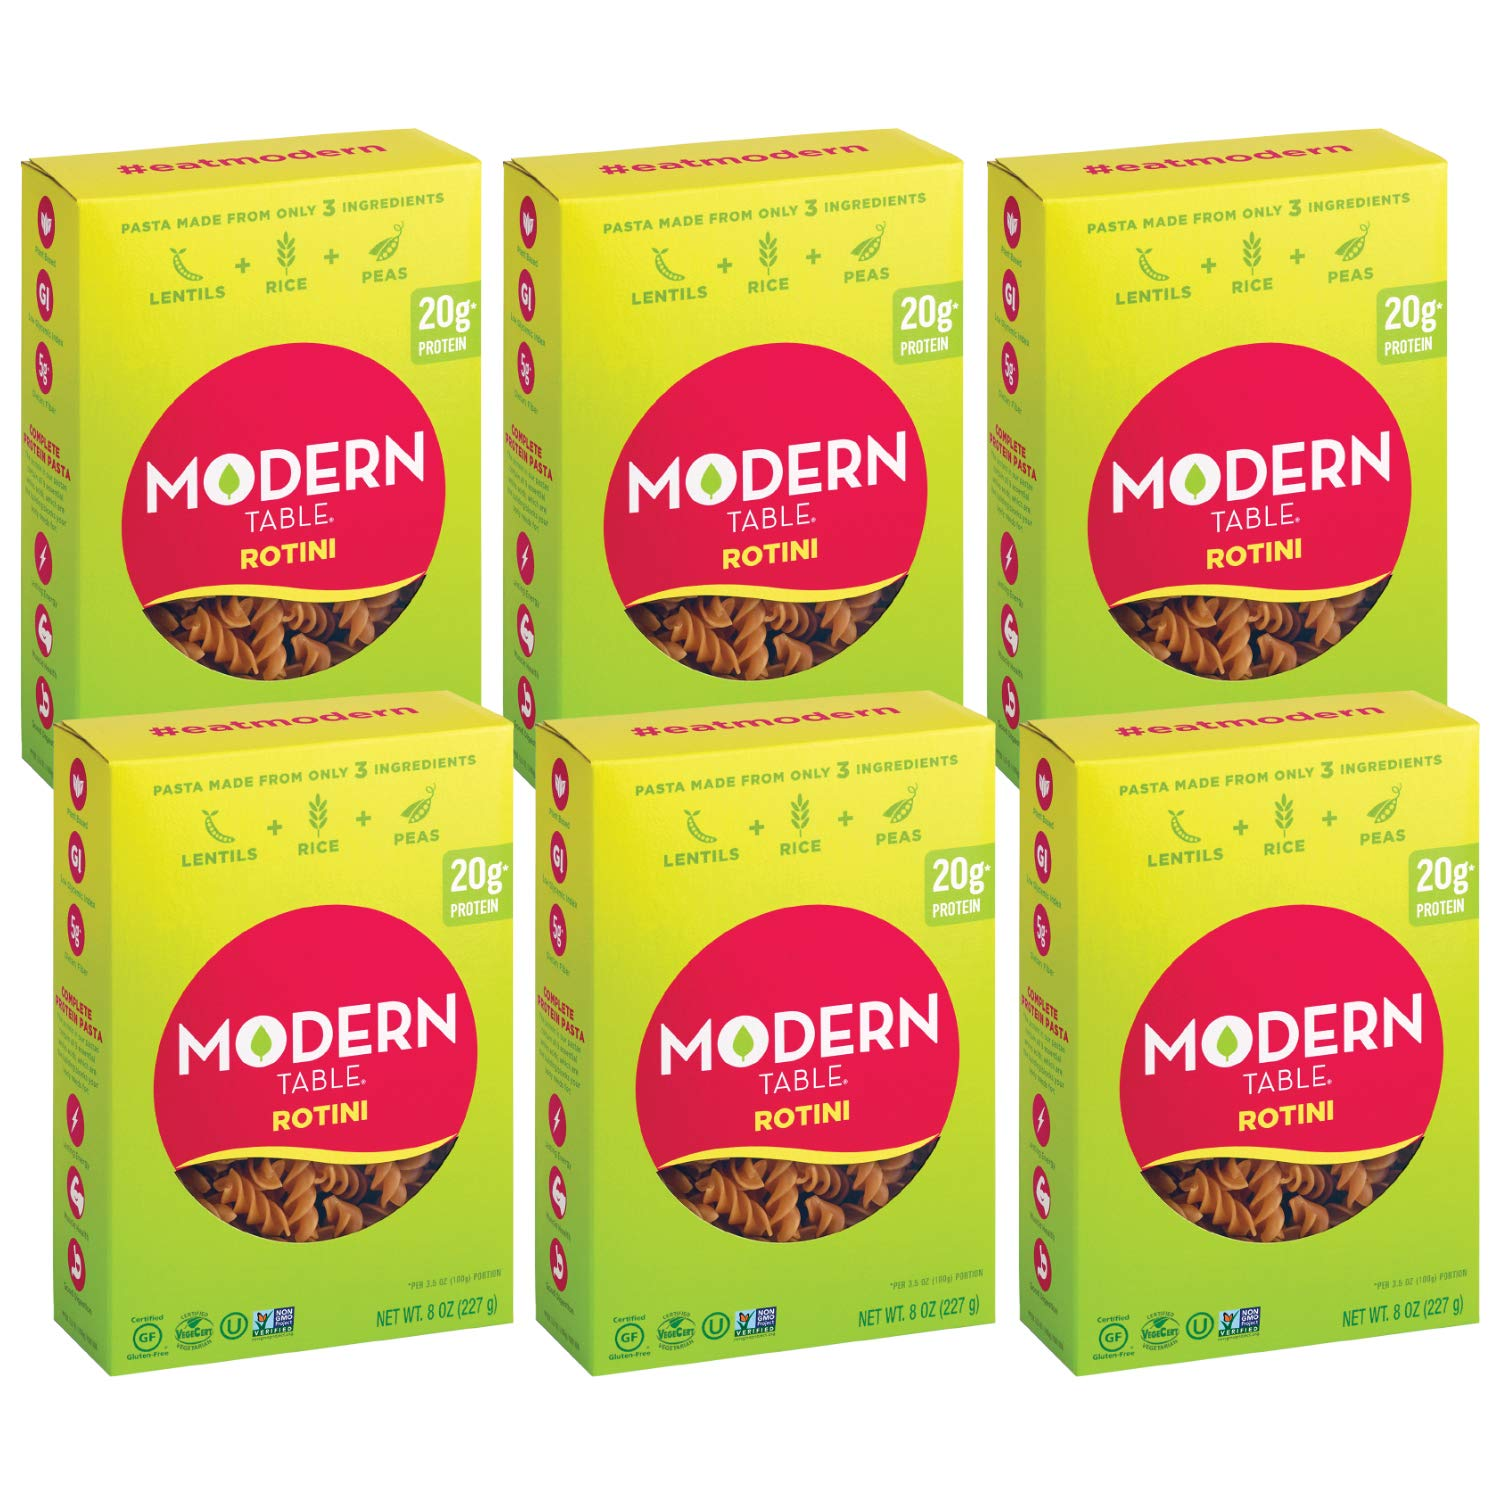 Modern Elegant Table Complete Protein Lentil Pasta 6 In a popularity Glut Rotini Count